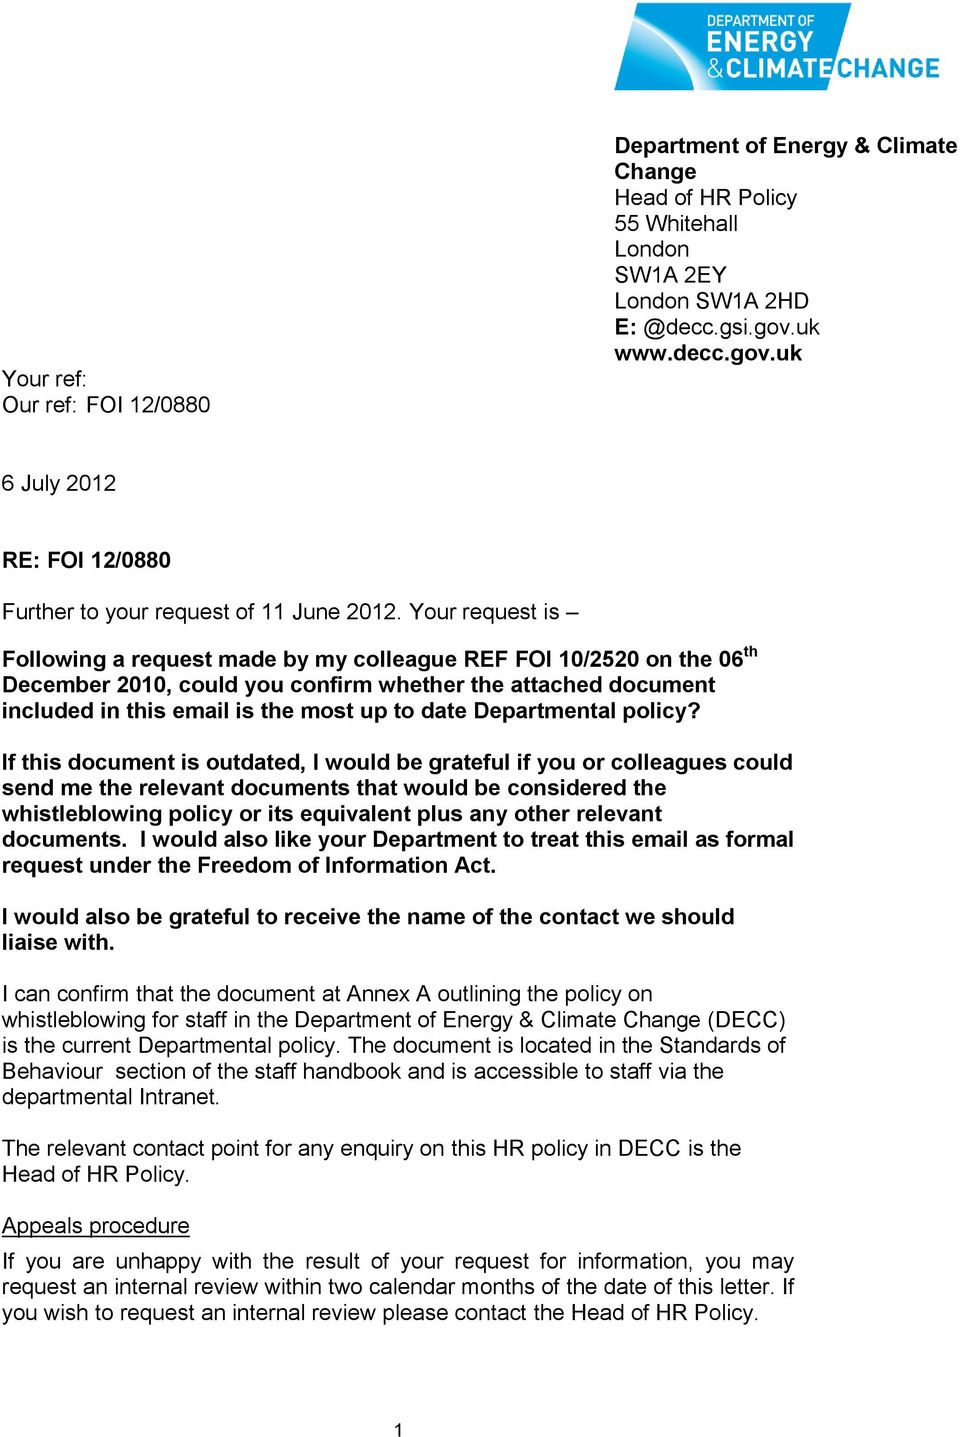 Your request is Following a request made by my colleague REF FOI 10/2520 on the 06 th December 2010, could you confirm whether the attached document included in this email is the most up to date